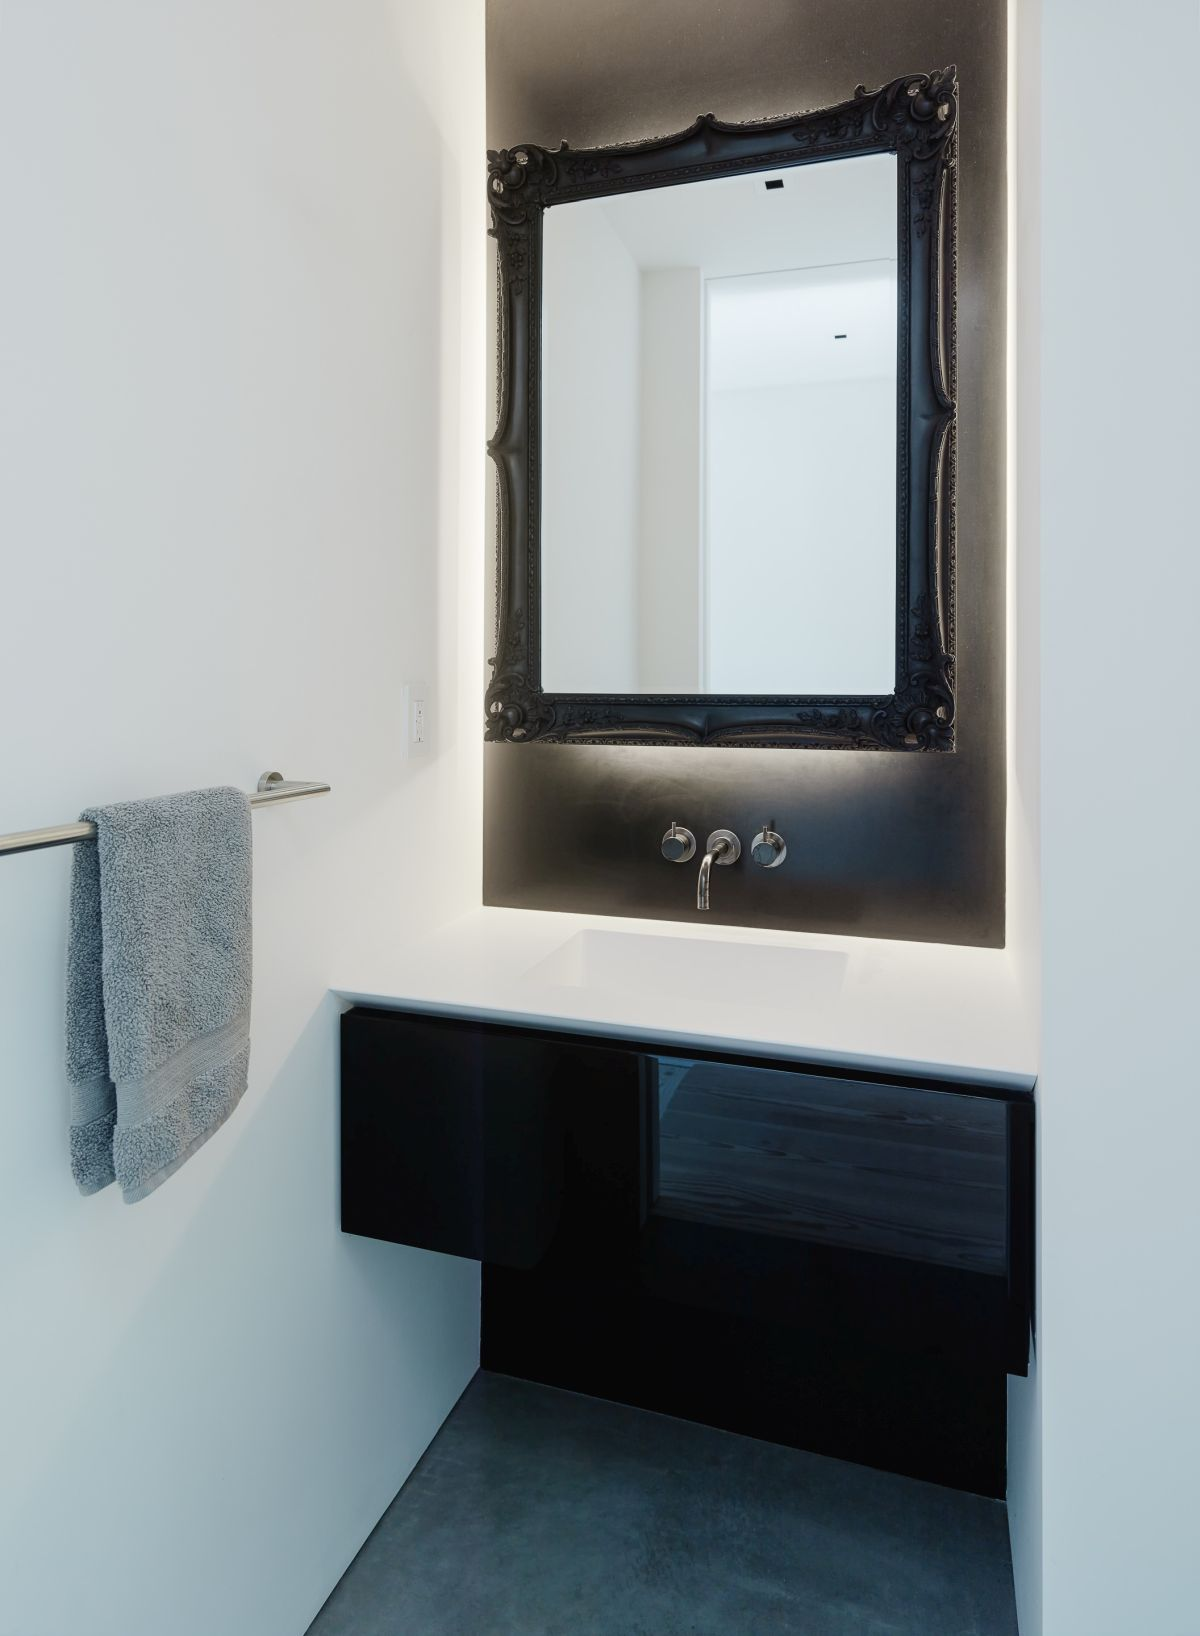 Certain ornate accent pieces here and there add visual interest to particular spaces like this mirror in the bathroom for example